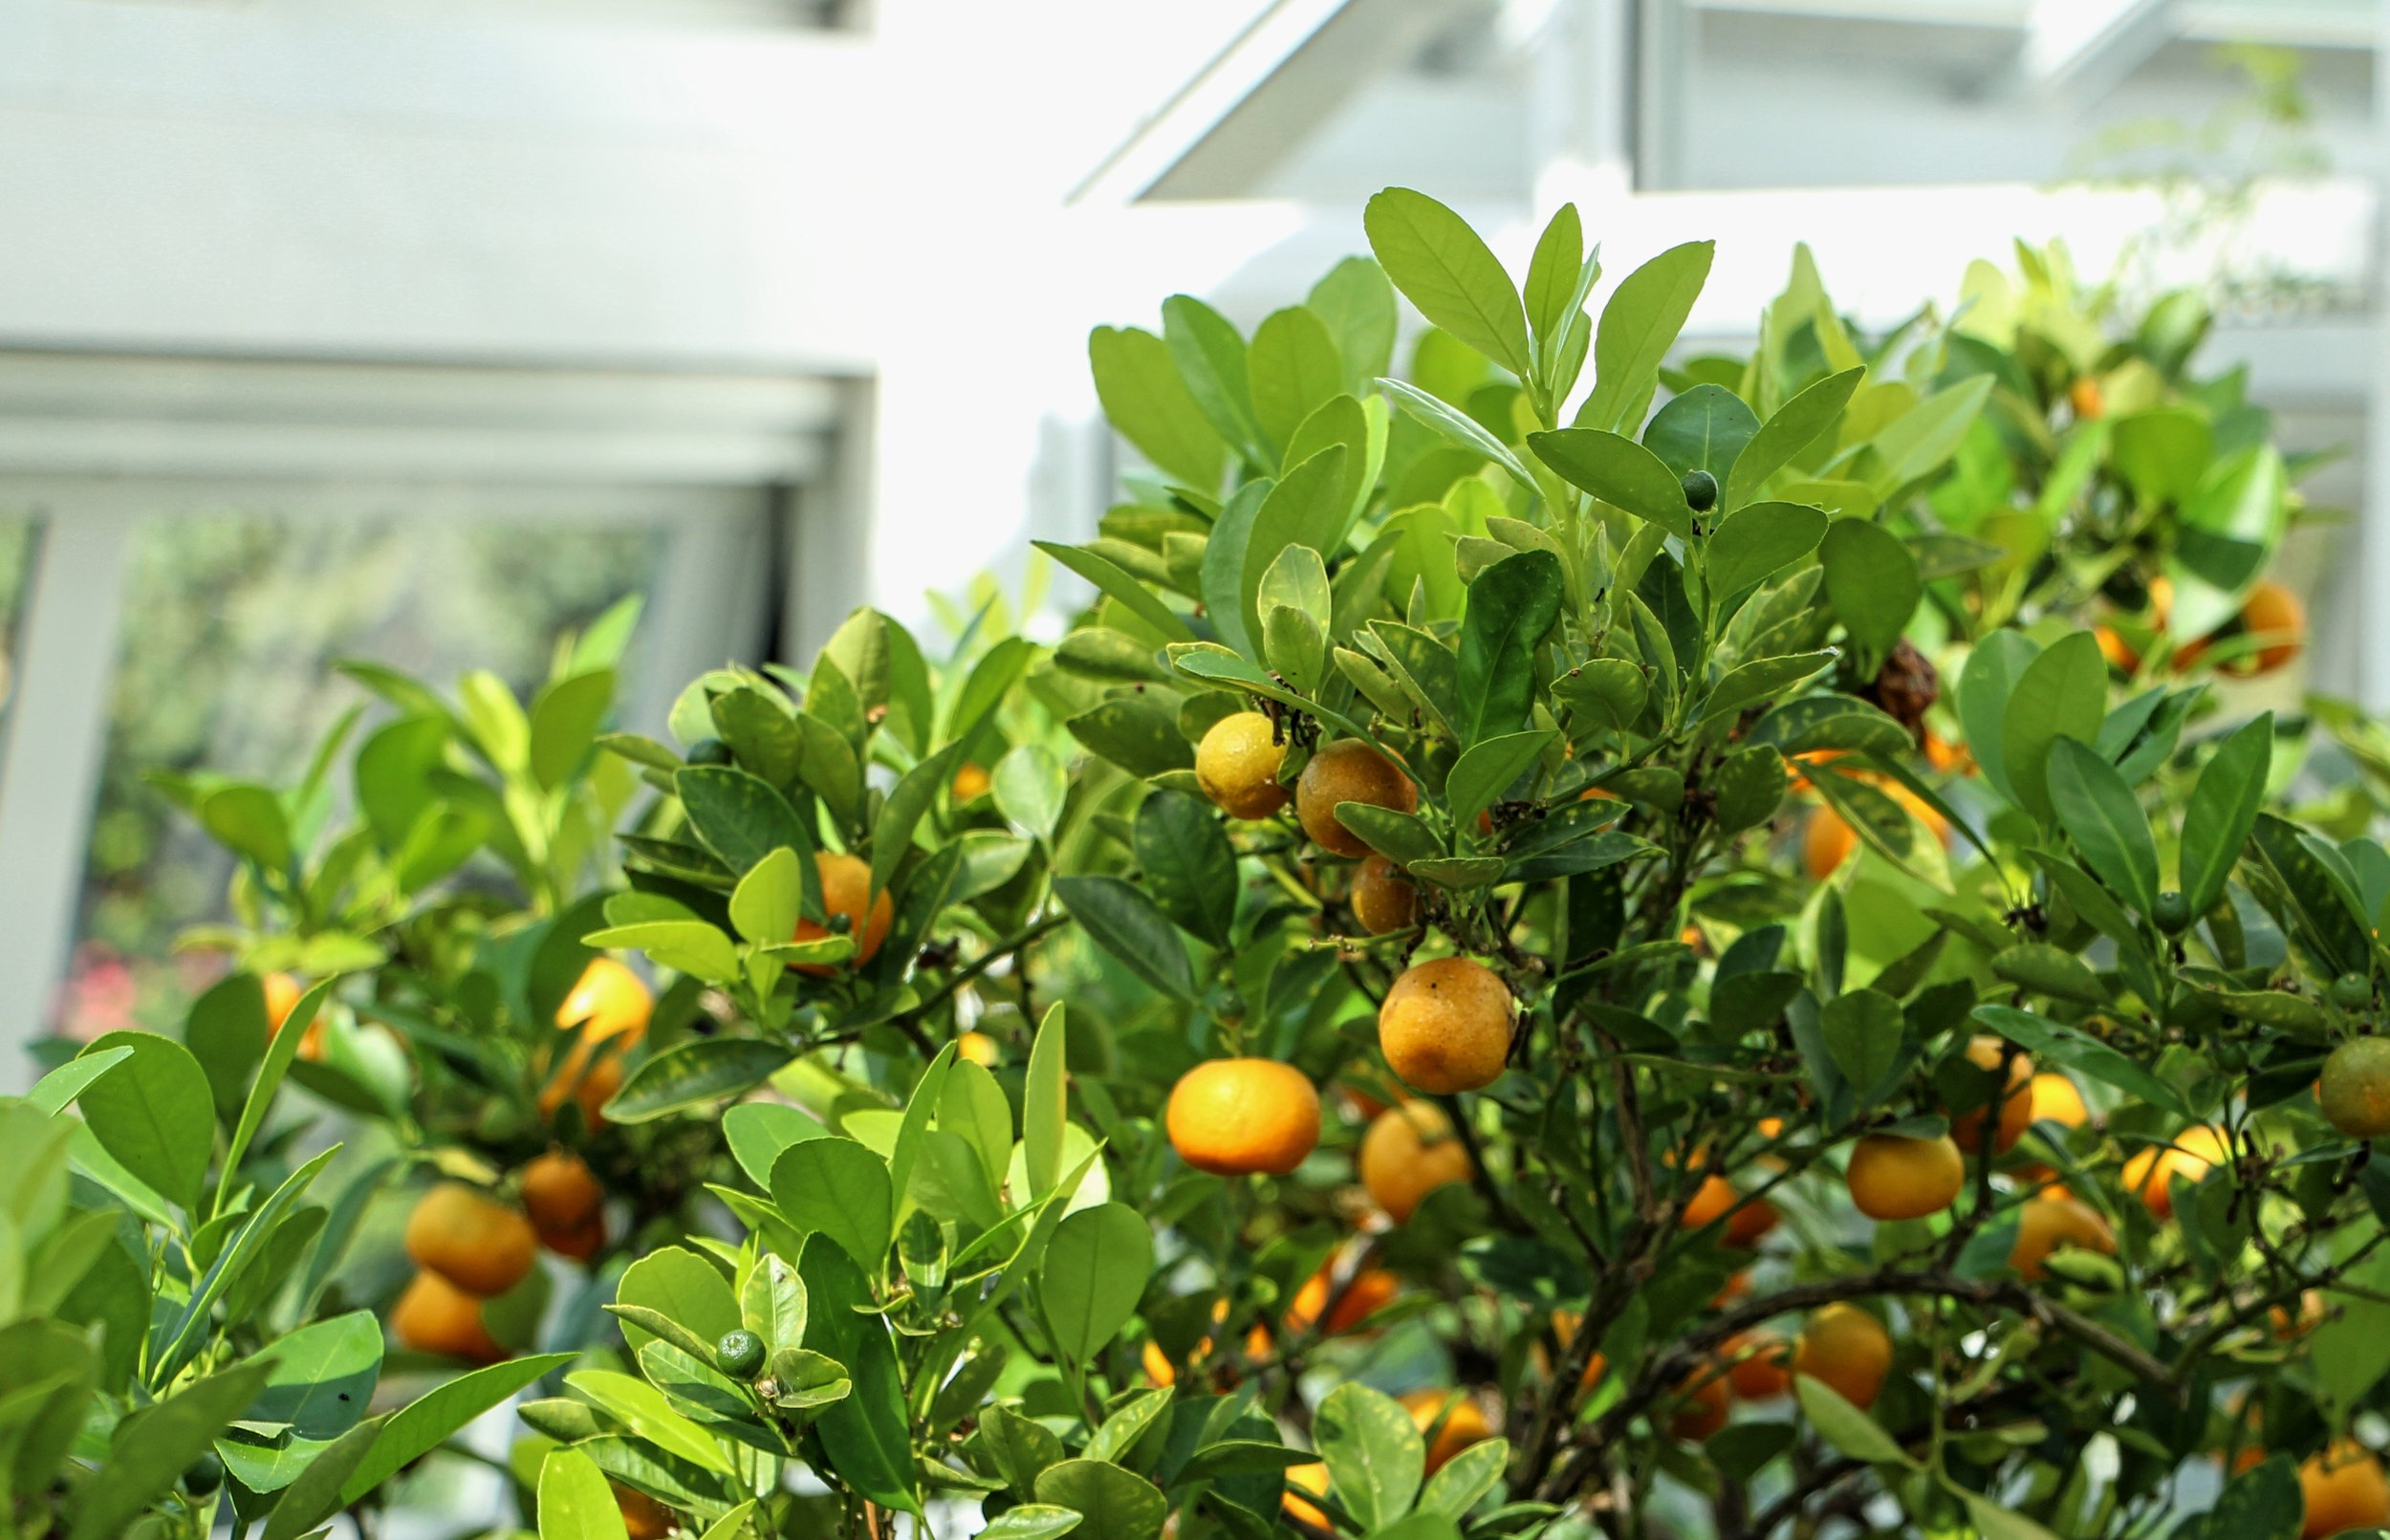 Oranges in the Greenhouse